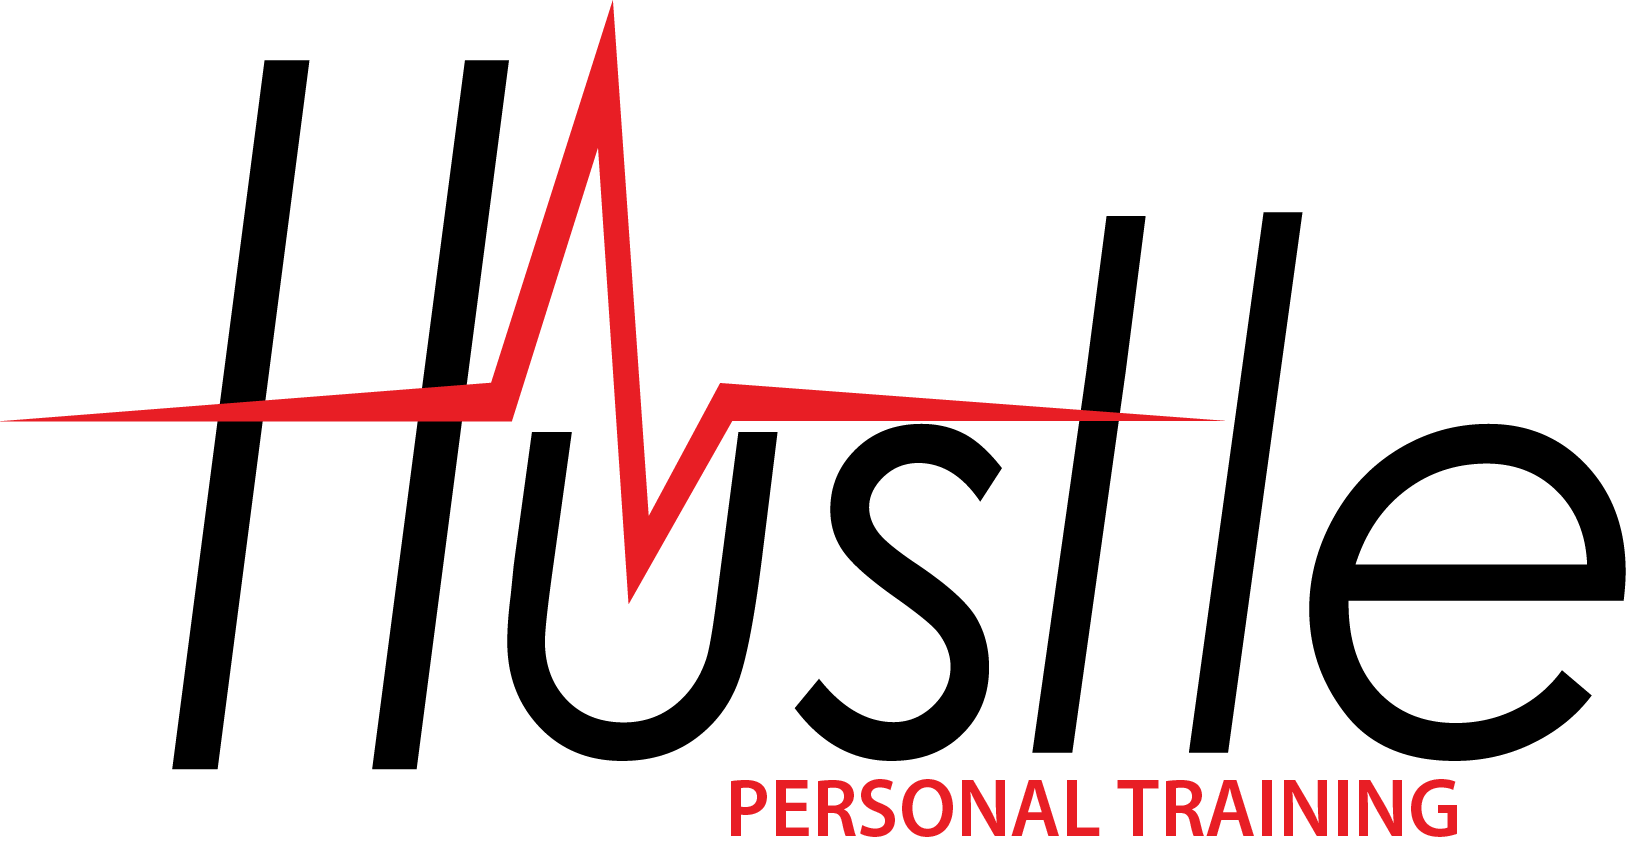 Hustle Personal Training